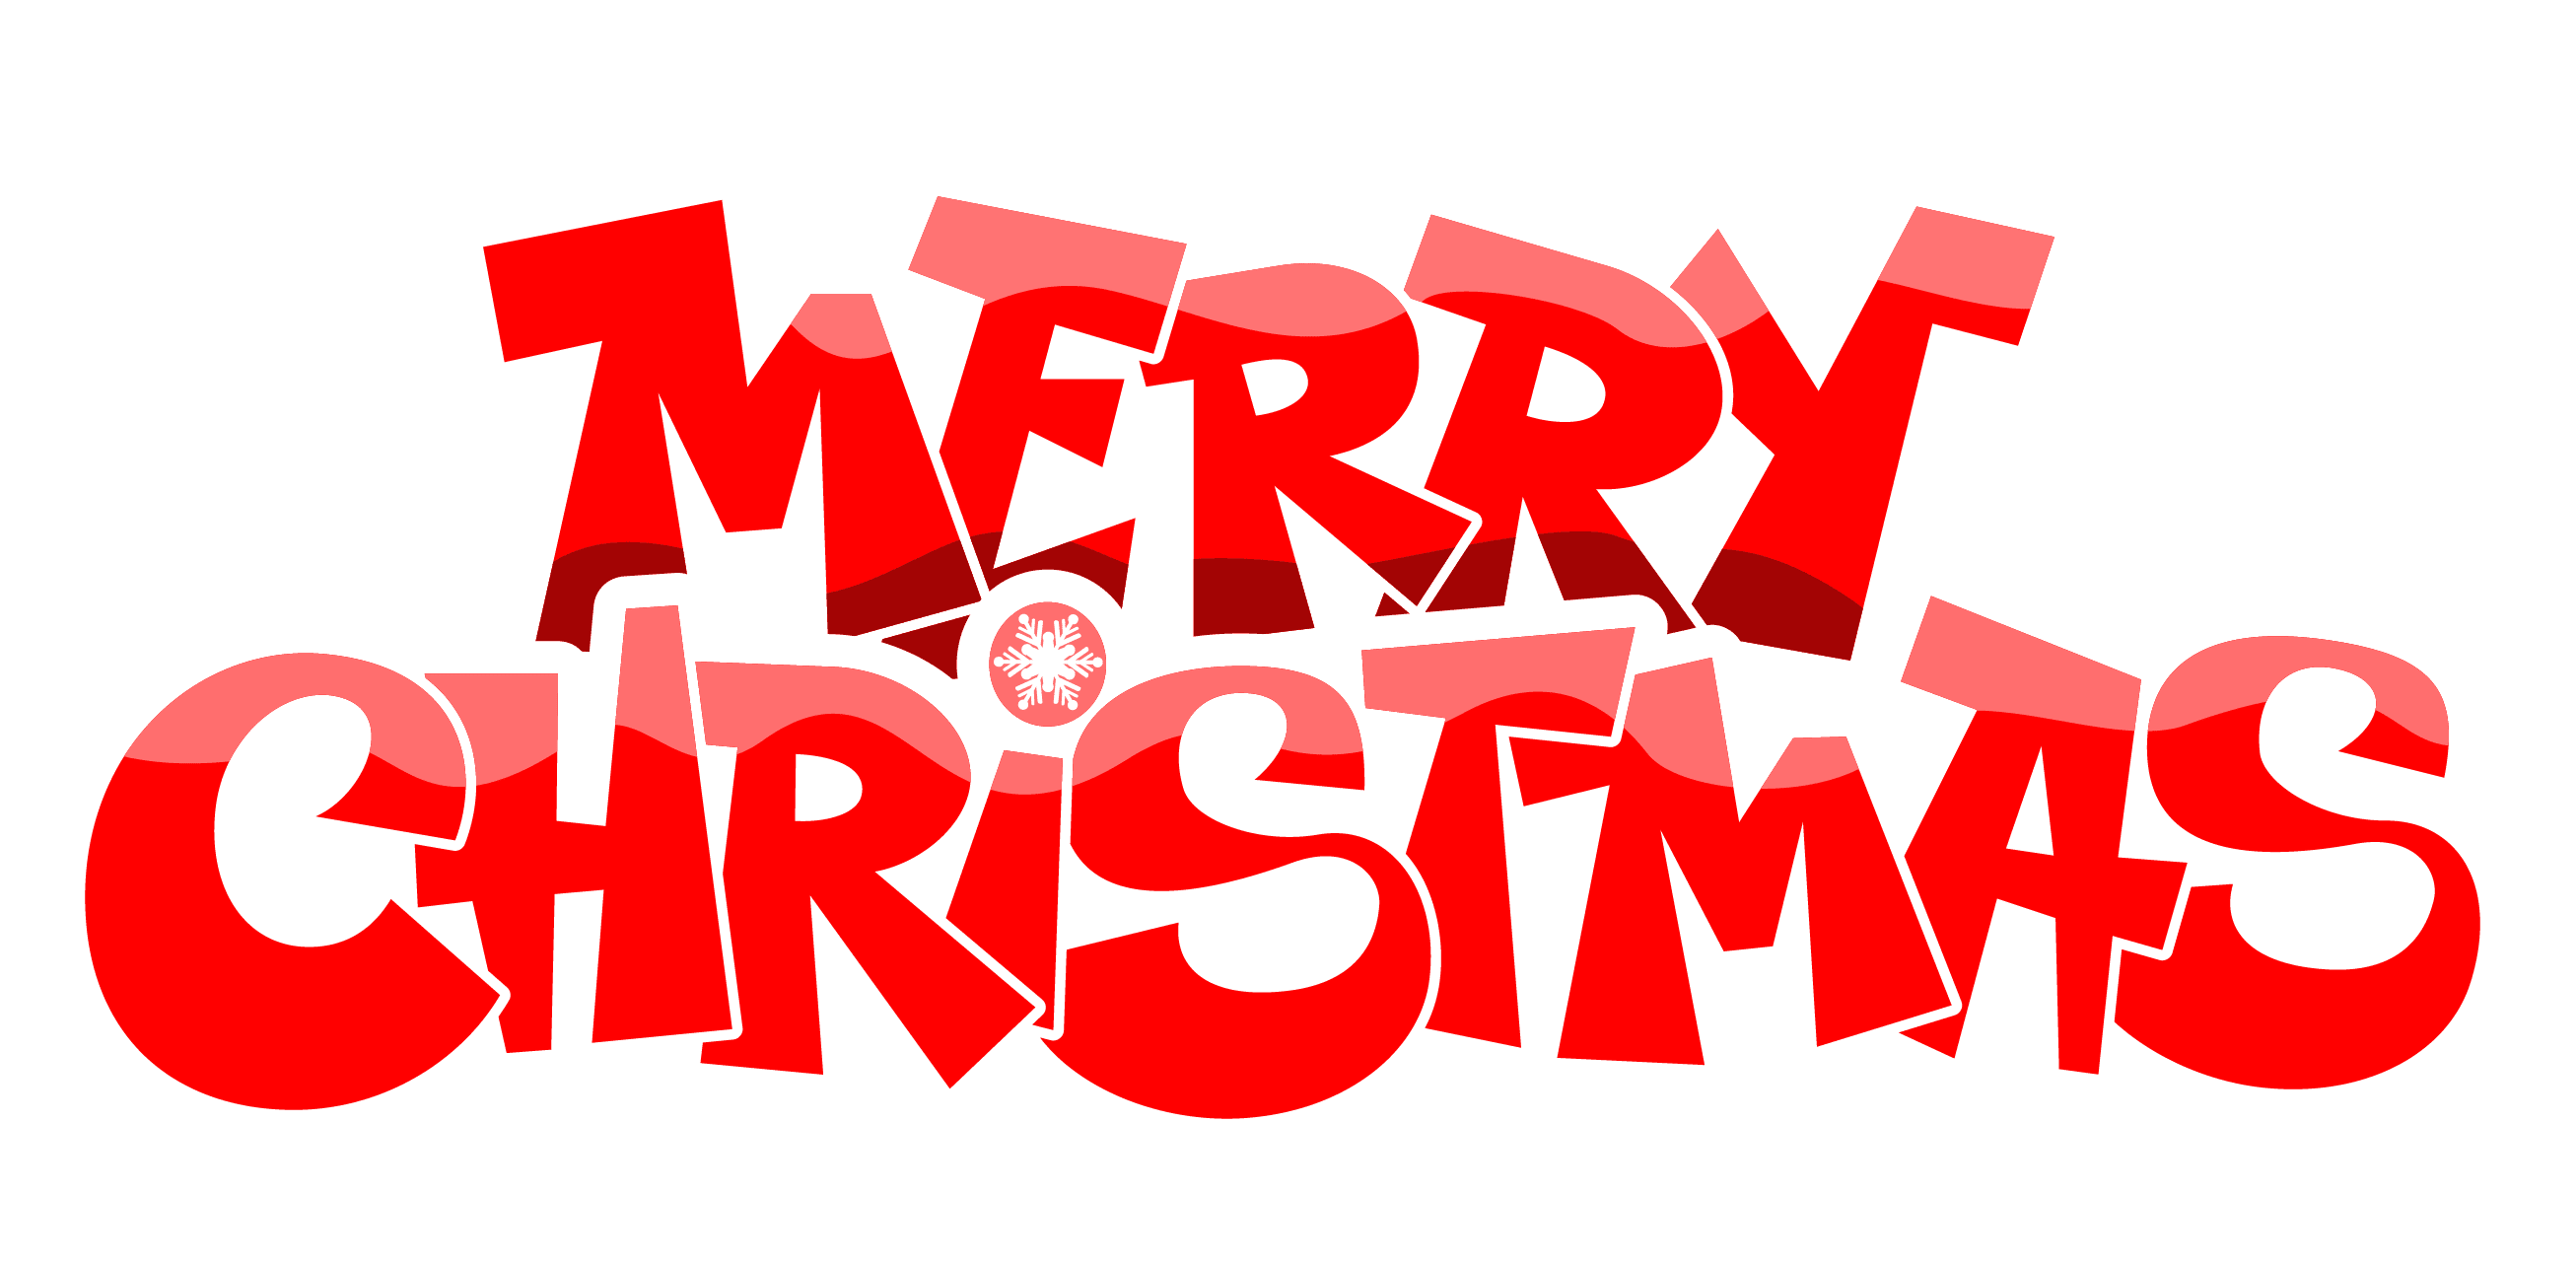 Merry christmas clipart words black and white stock  black and white stock